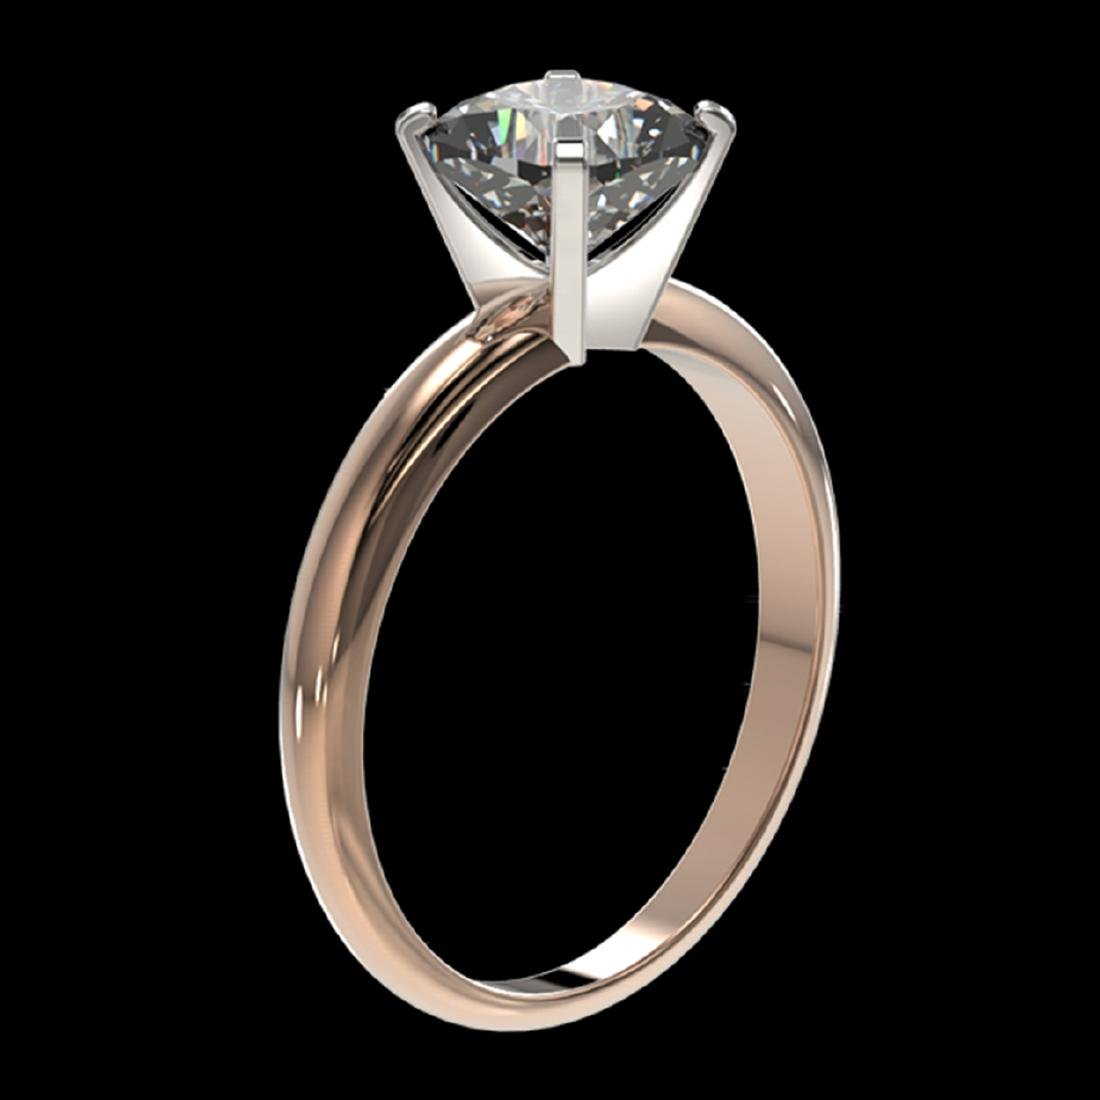 1.25 ctw VS/SI Cushion Cut Diamond Ring 10K Rose Gold - - 3